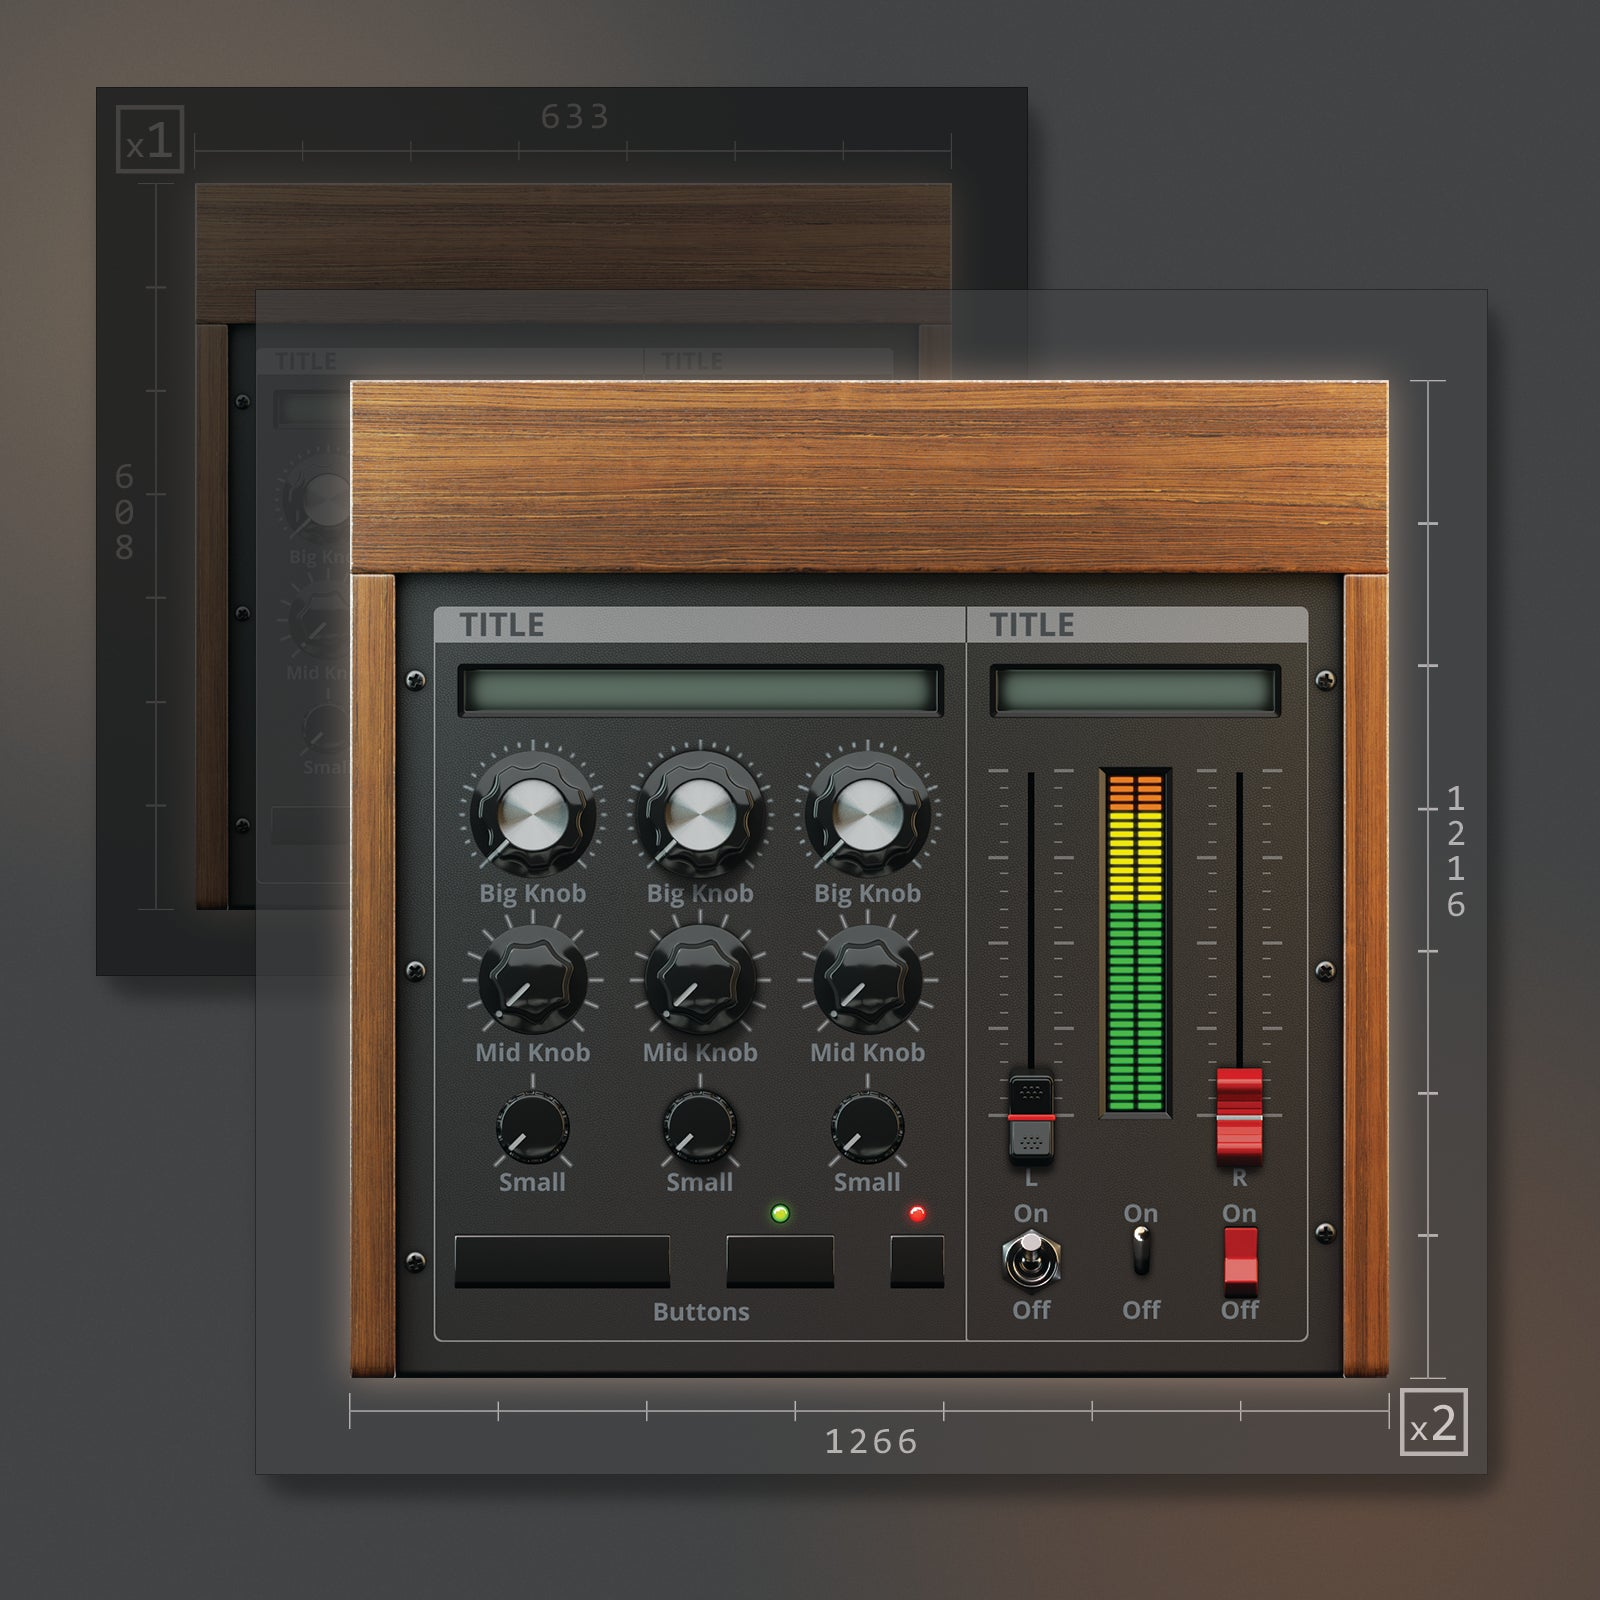 1 resolutions of Moog styled UI template VST 1266x1216